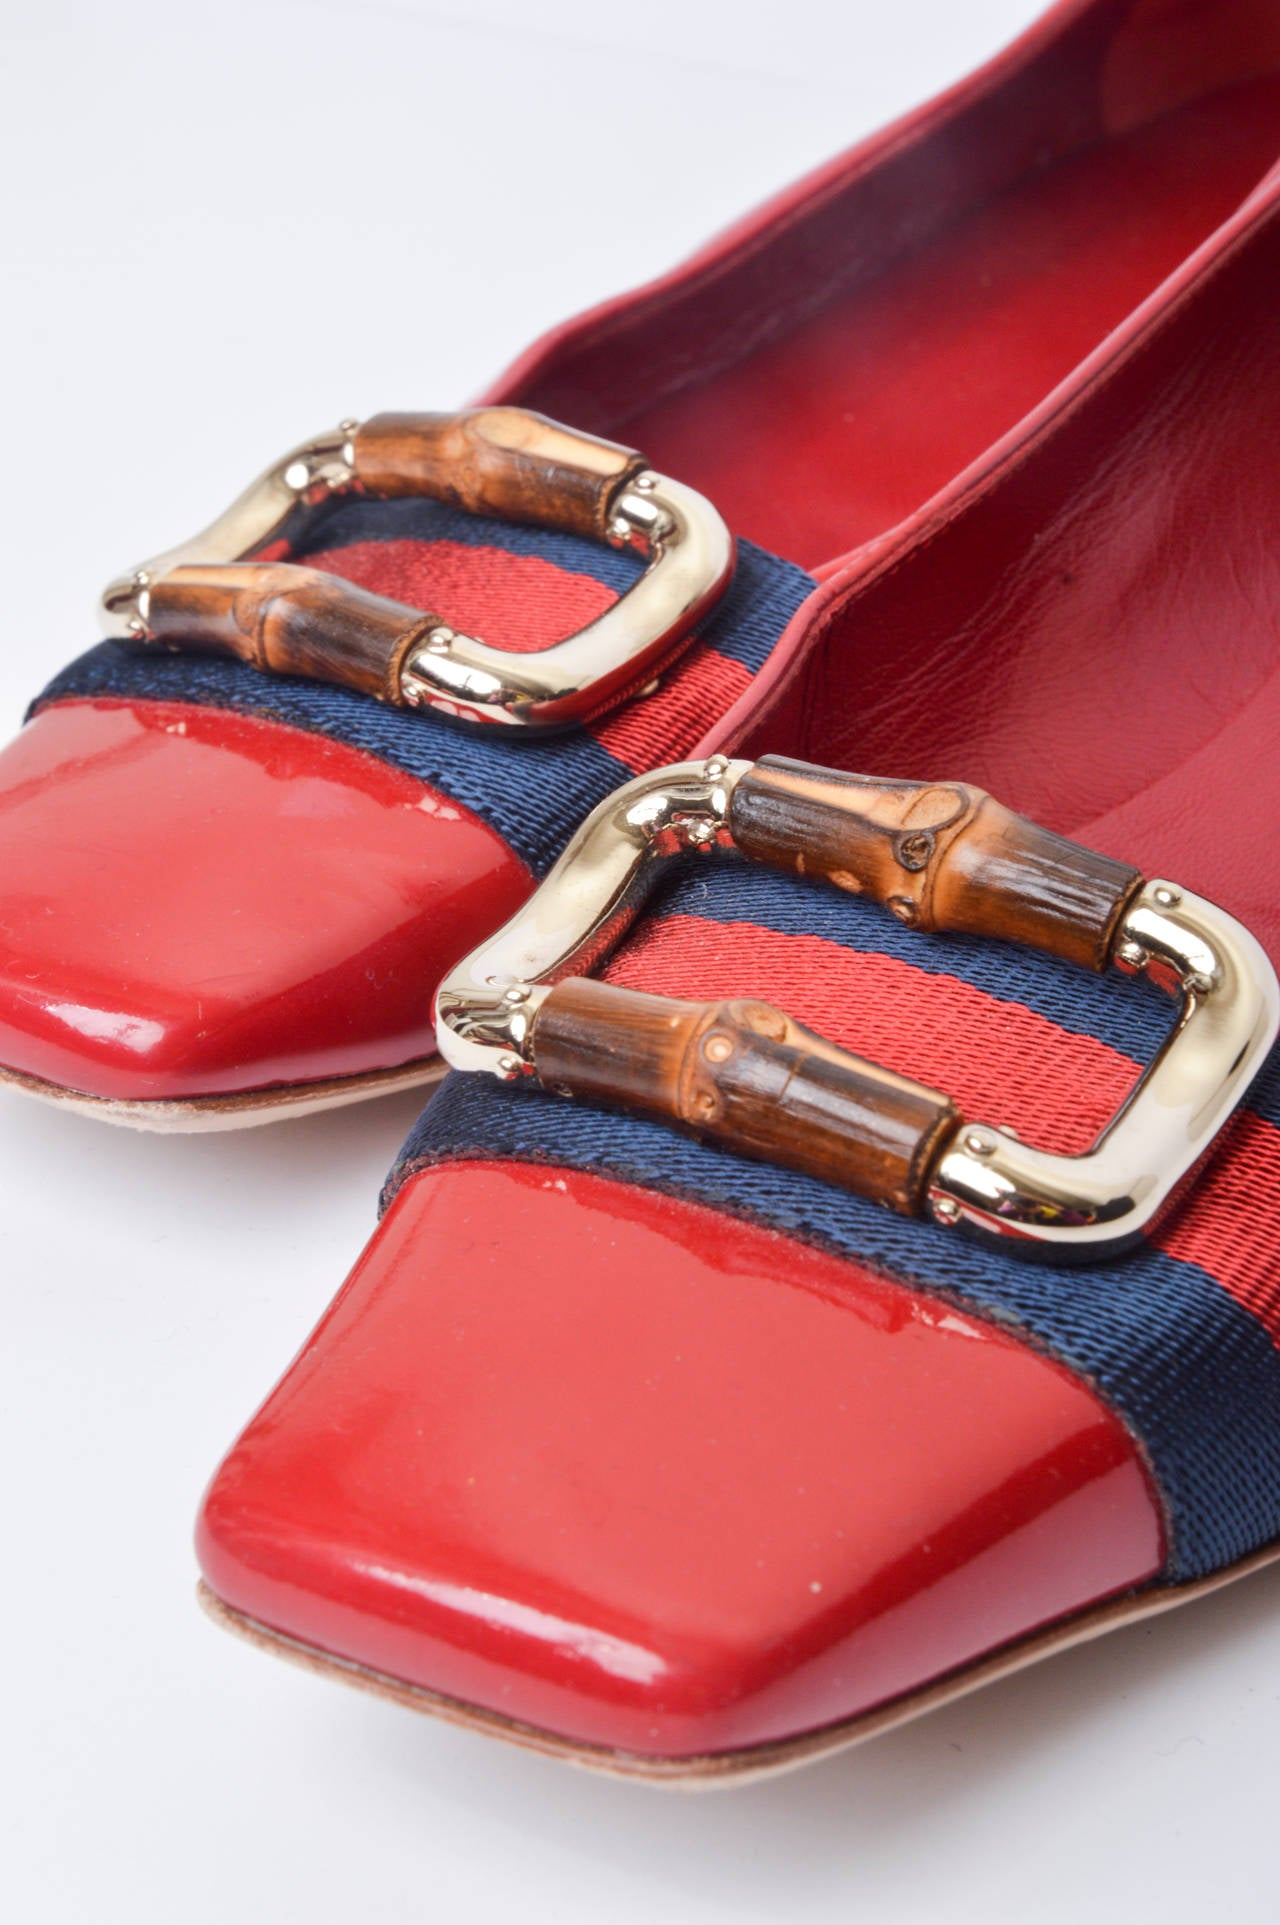 Gucci Red Patent Leather Mod Flats Size 8 For Sale 2